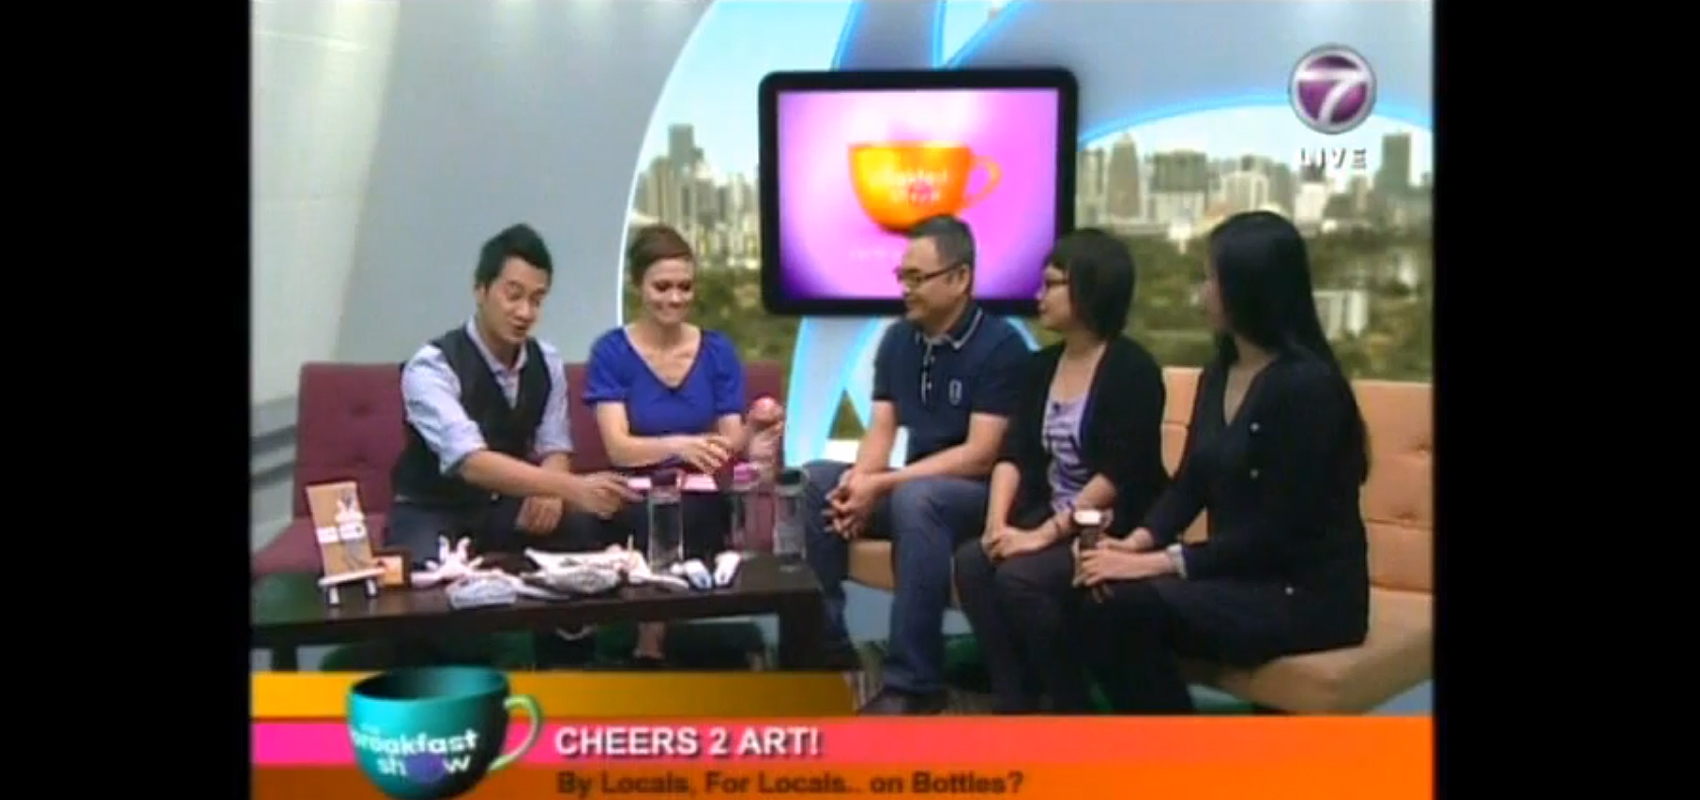 20160722_HIGHLIGHT_NEWS_BANNER_NTV7 THE BREAKFAST SHOW_BROS CHEERS 2 ART